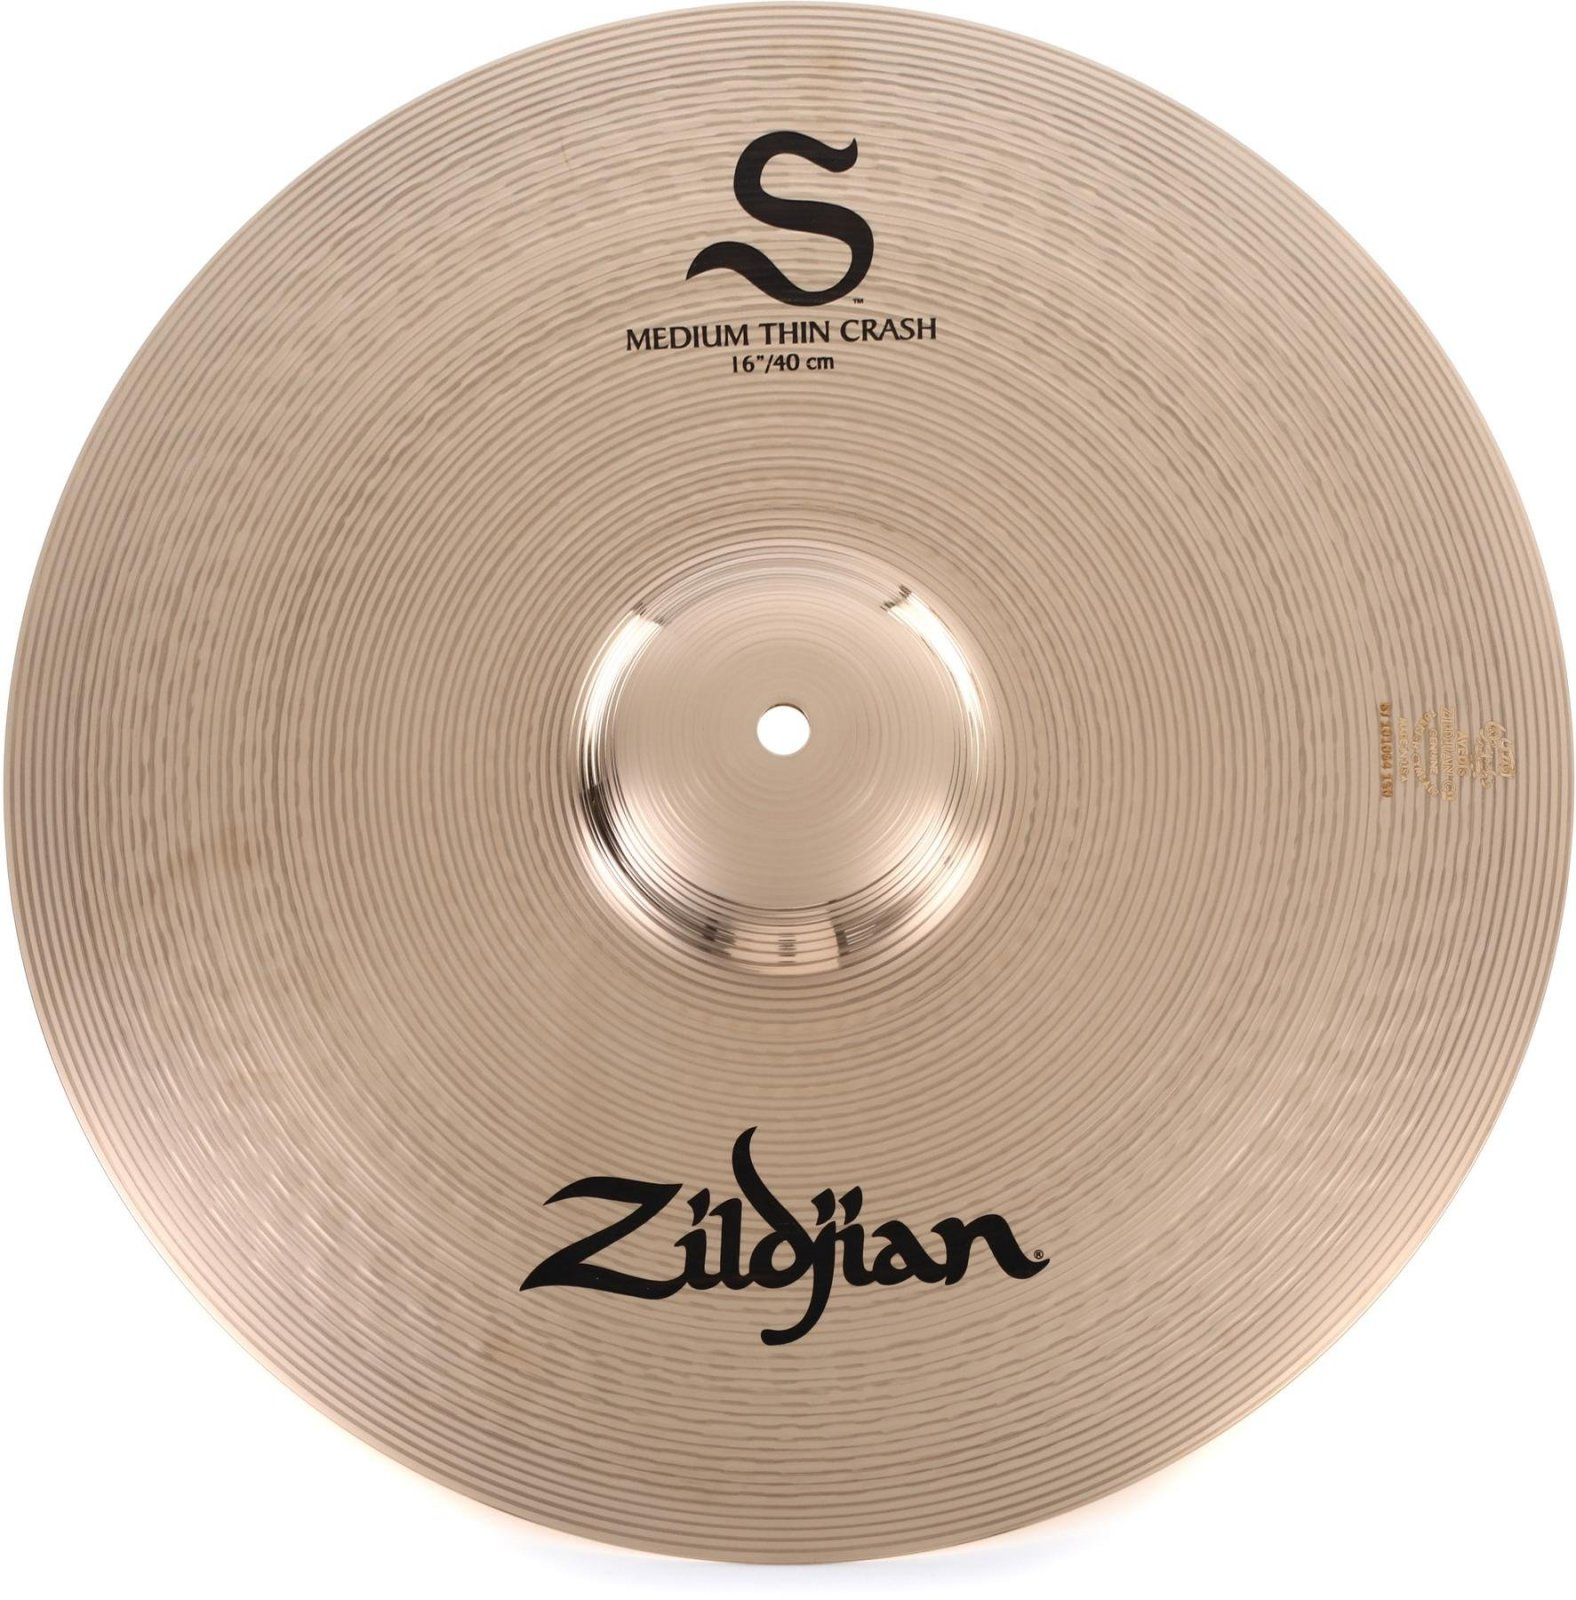 Zildjian S Performer 16 Medium thin Crash